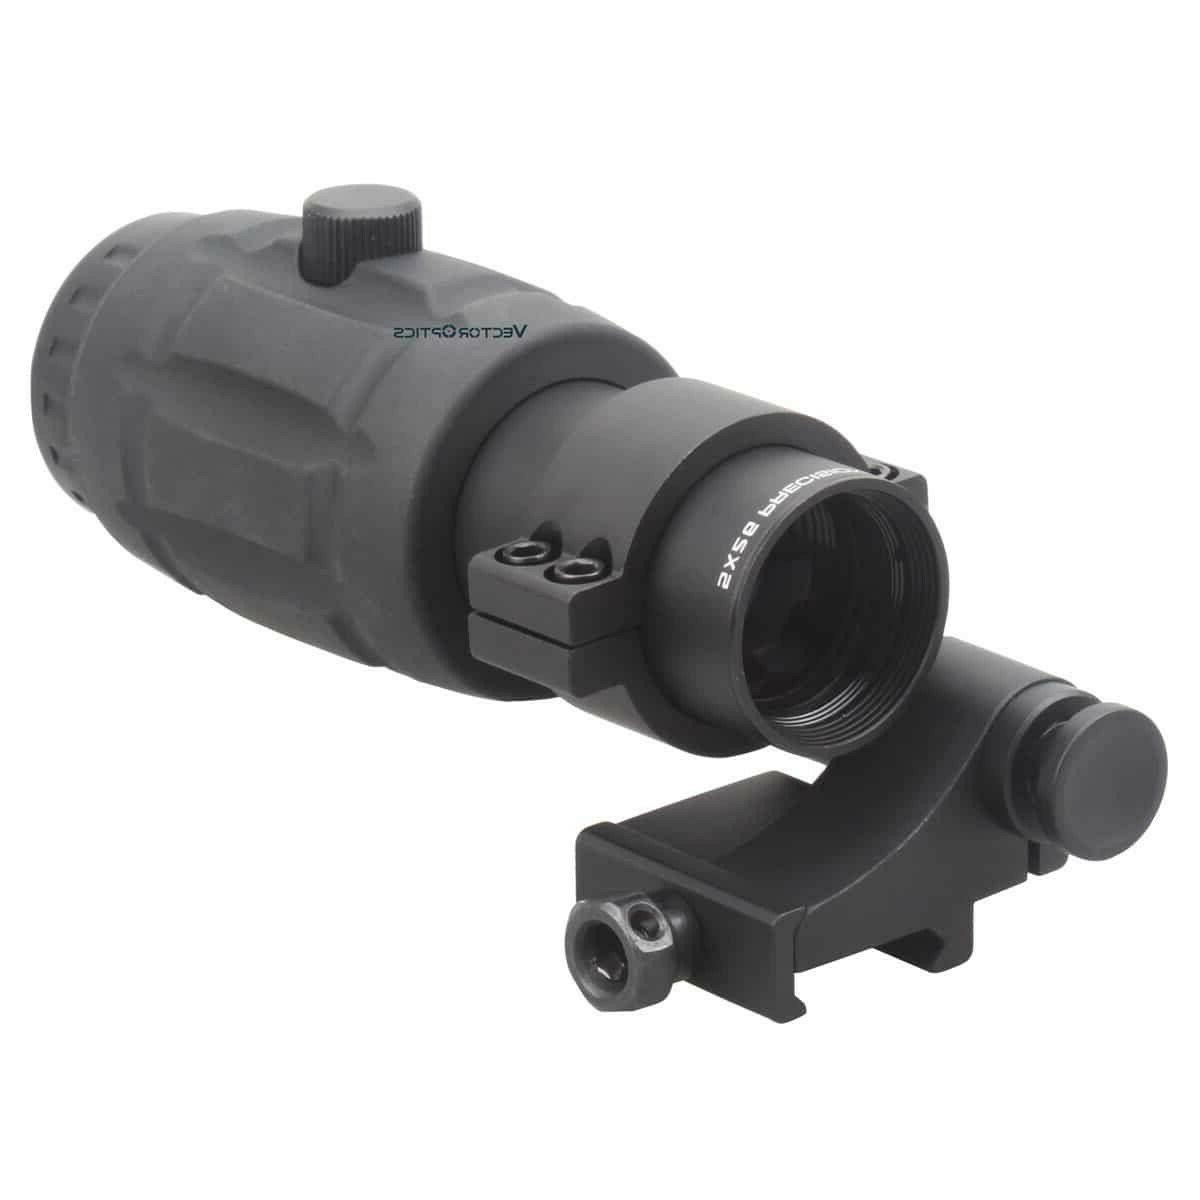 Vector Optics 5X Magnifier Scope for Red Dot Sights w/ Flip